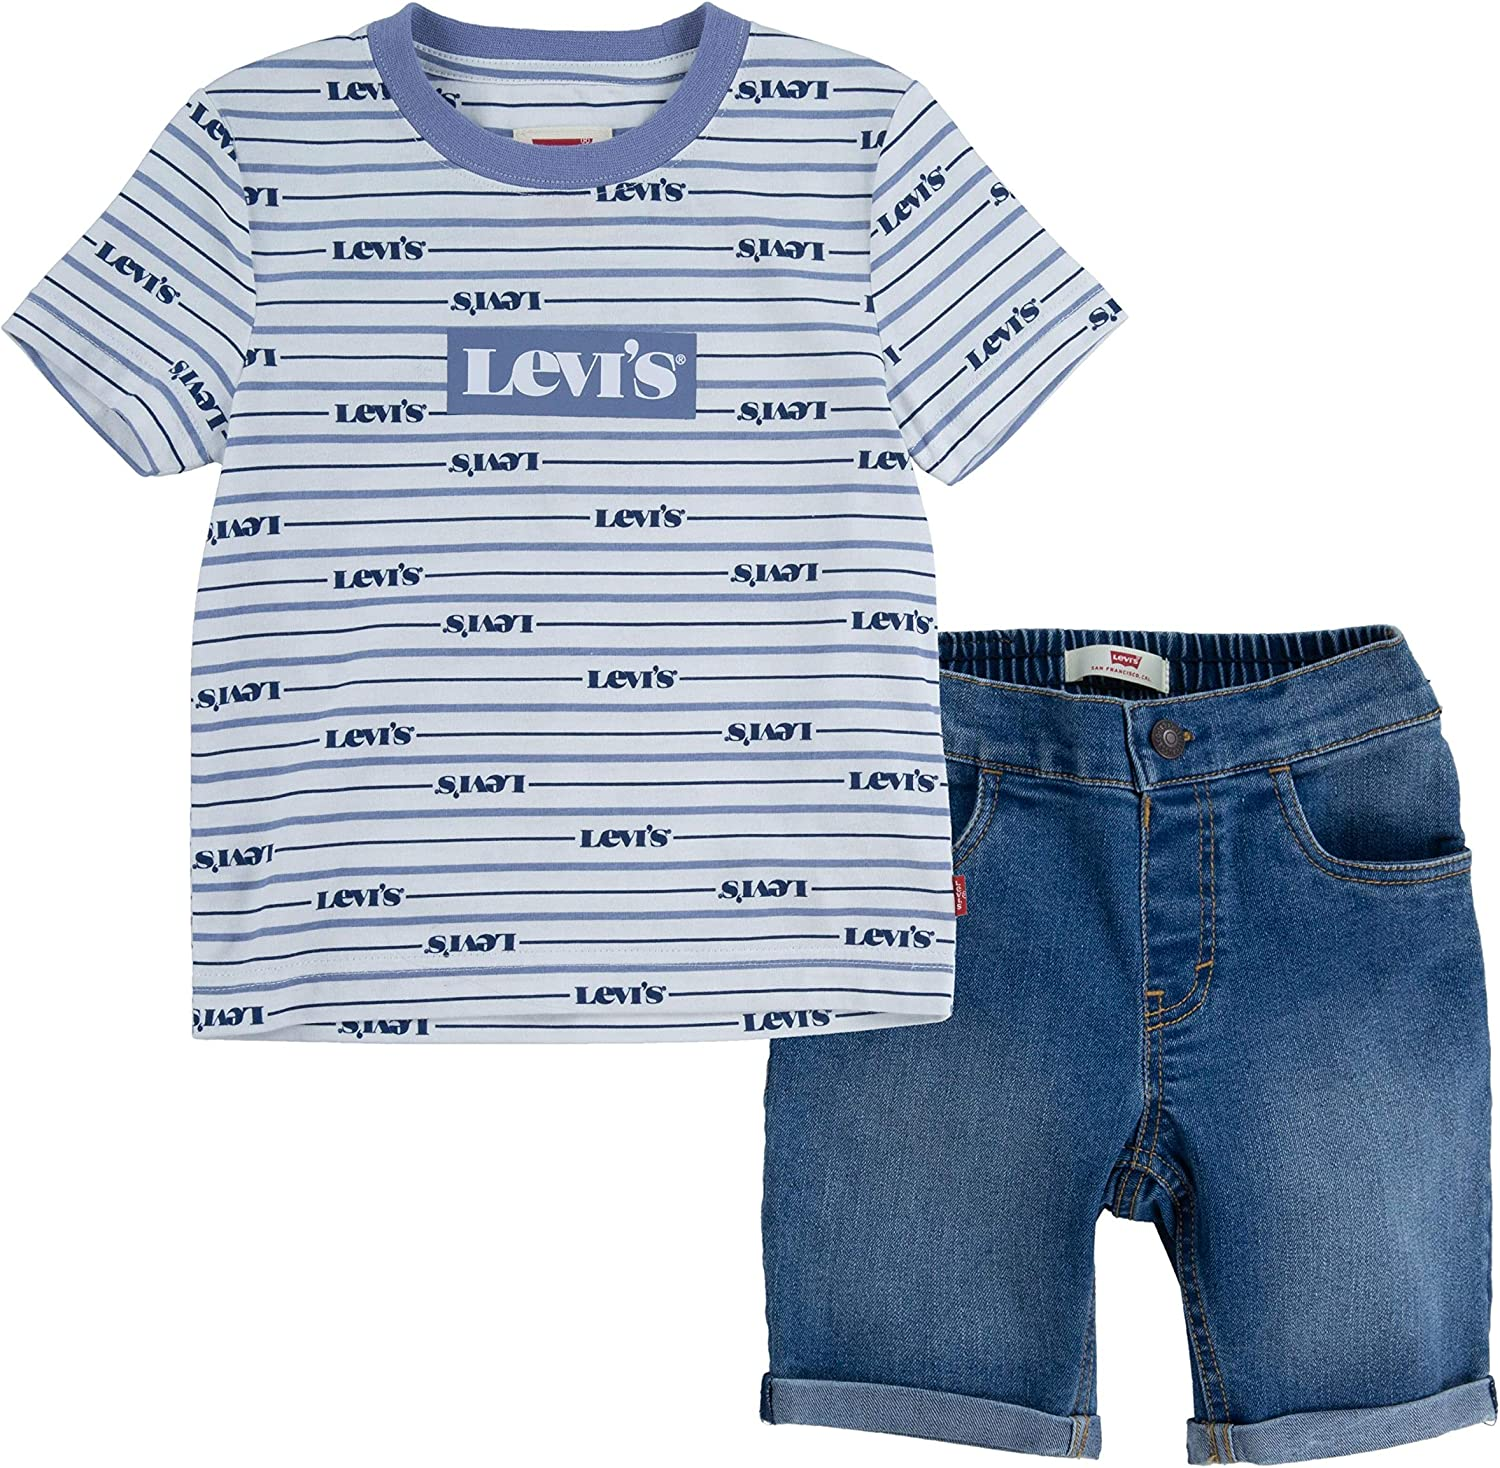 Levi's baby-boys Large discharge sale Graphic T-shirt and Shorts Set Cheap SALE Start 2-piece Outfit